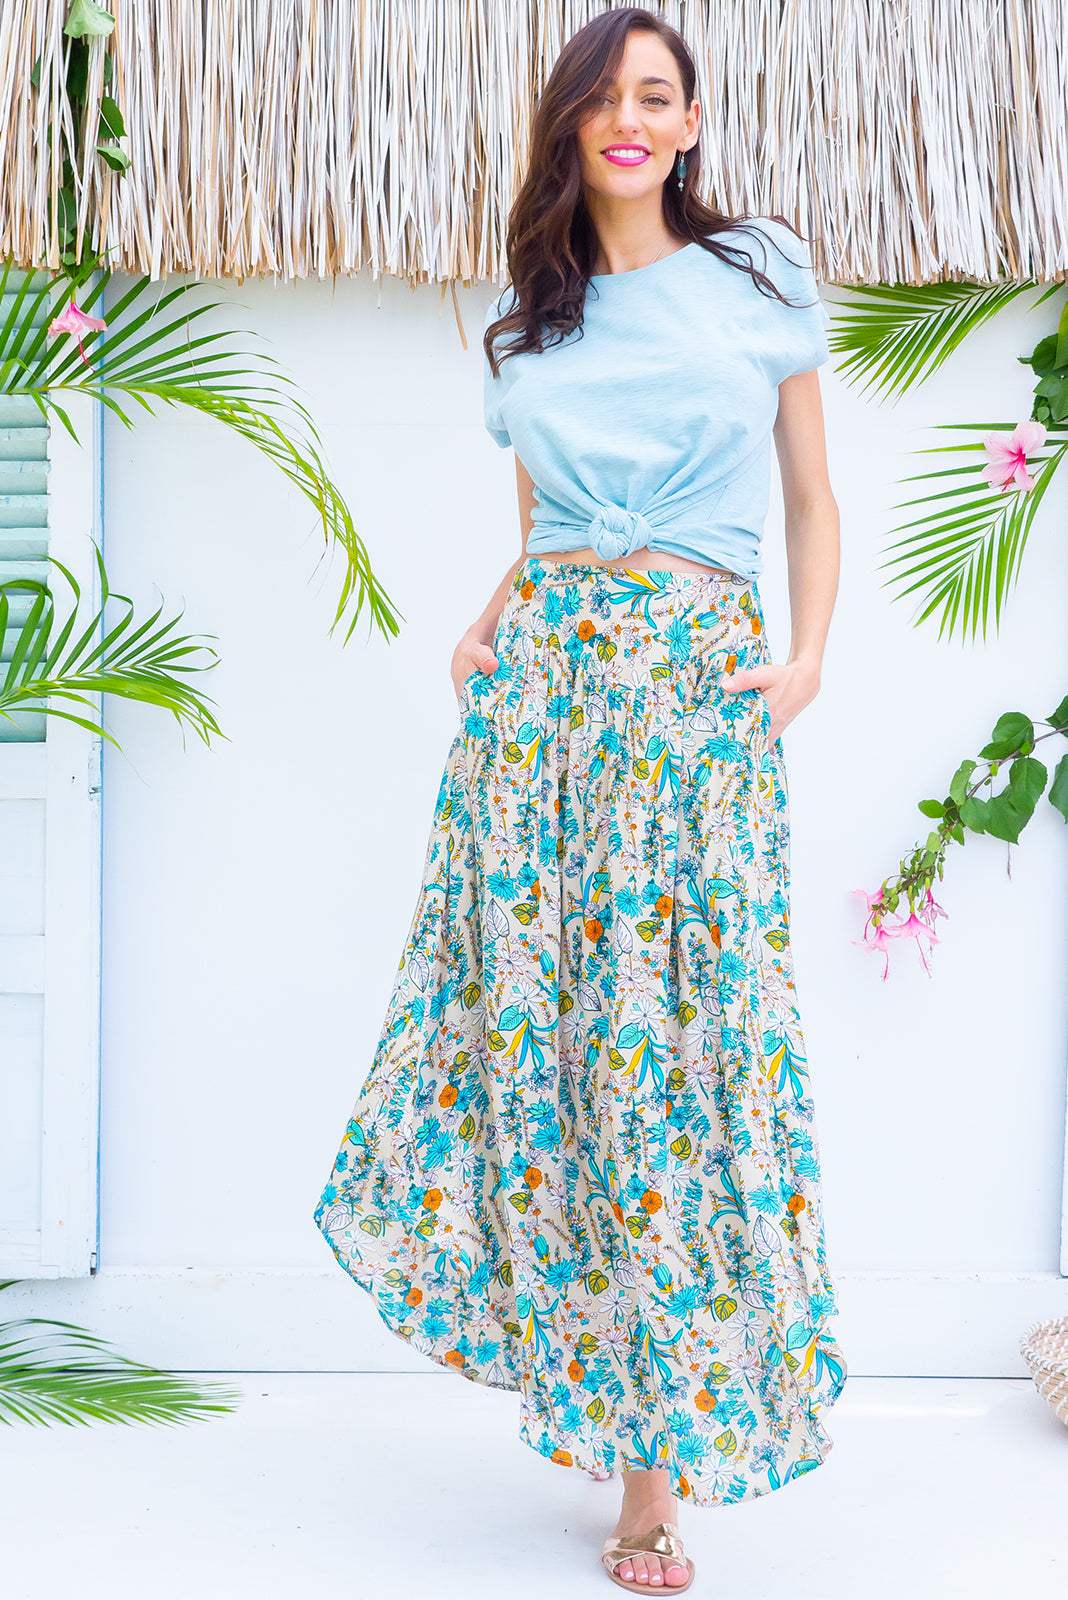 Sails Palma Crema Maxi Skirt with a soft ruched elastic back and pockets in a gorgeous soft cream intricate floral print on rayon fabric